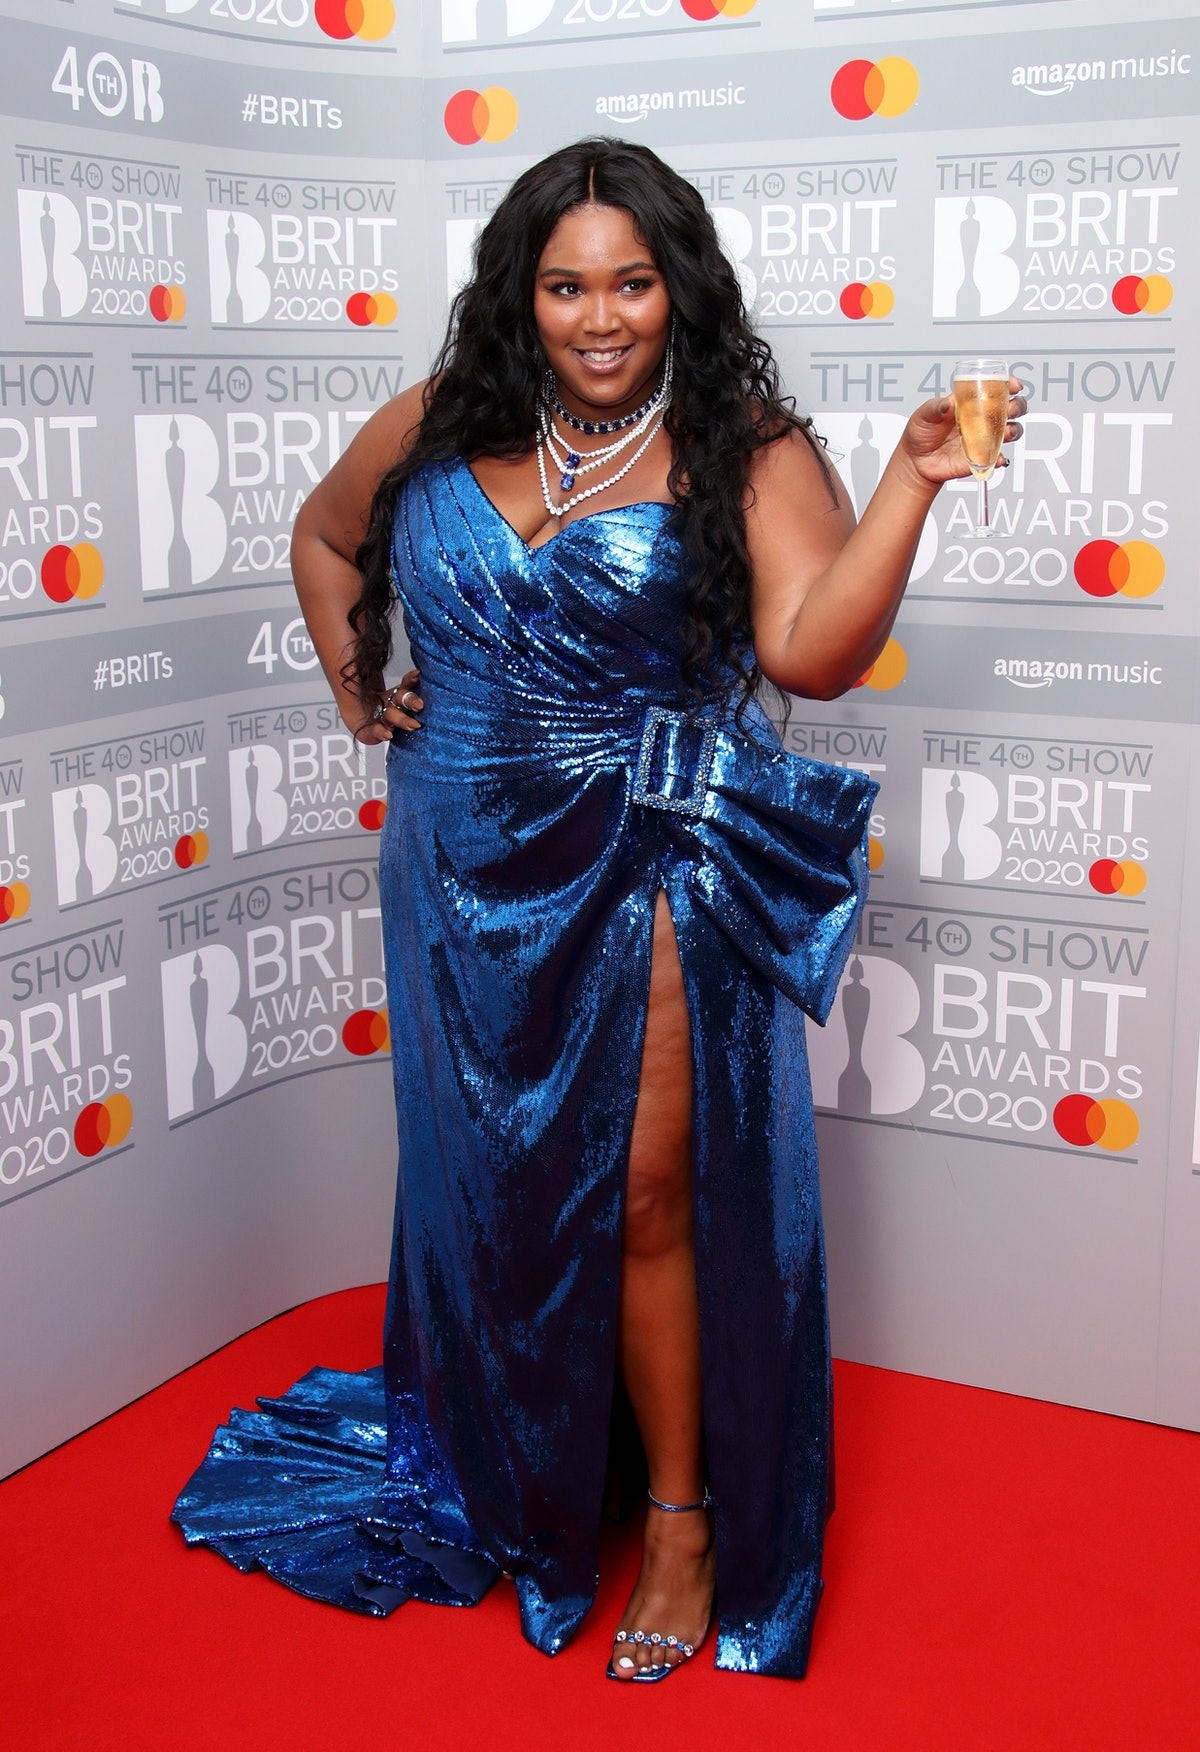 Lizzo with champagne in blue gown.